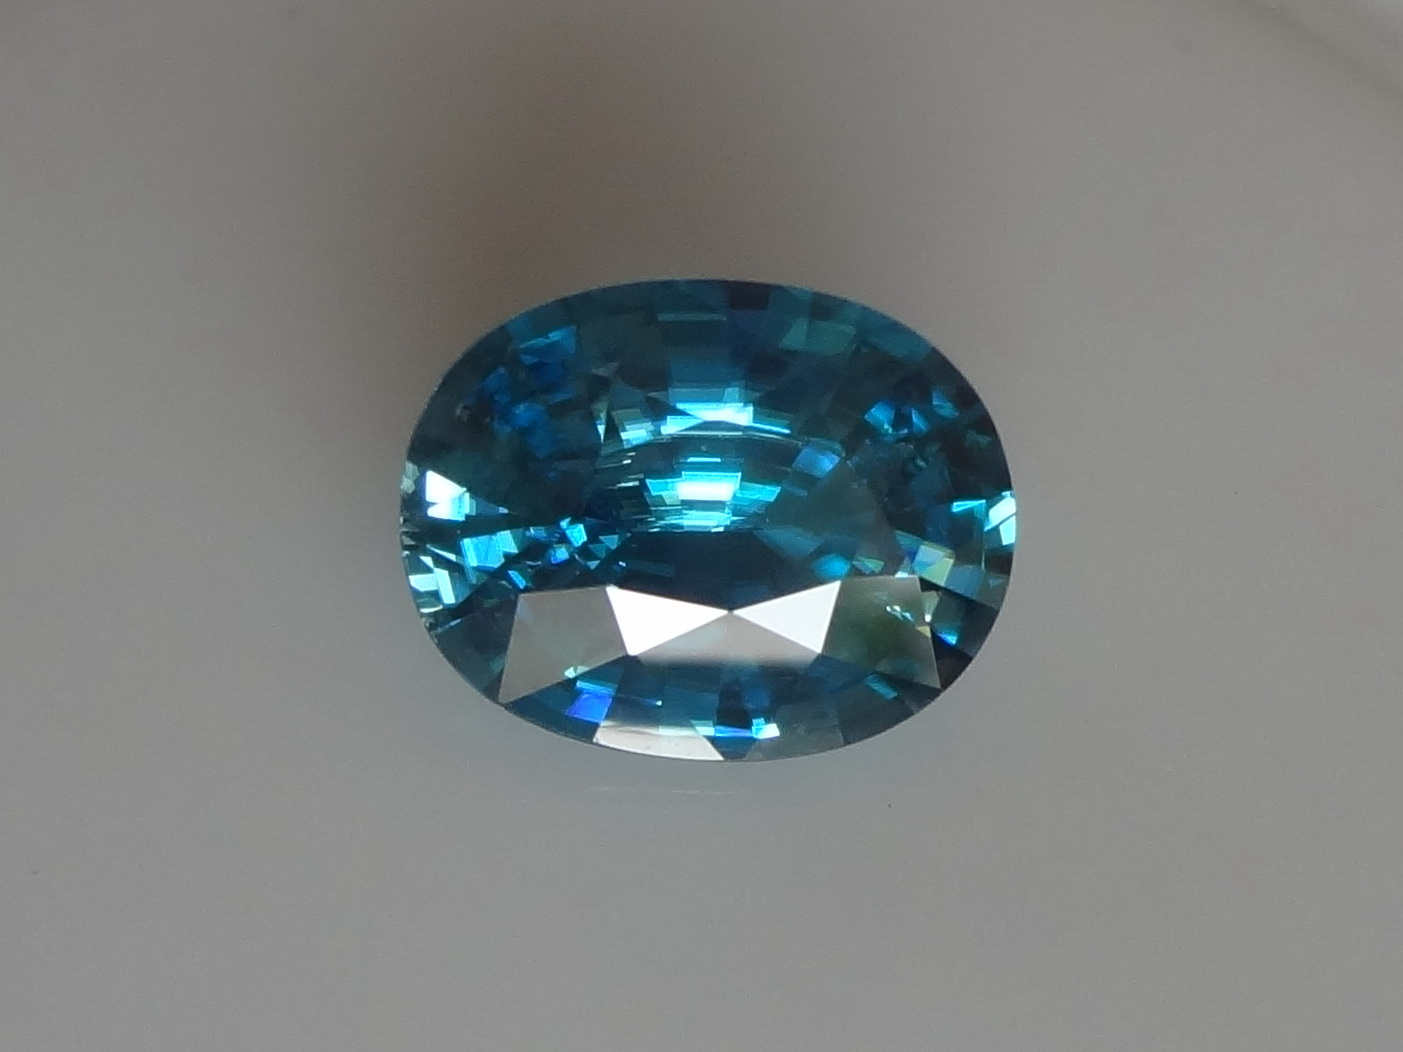 Large Blue Zircon - very wide while shallow, a big zircon gem at small price.